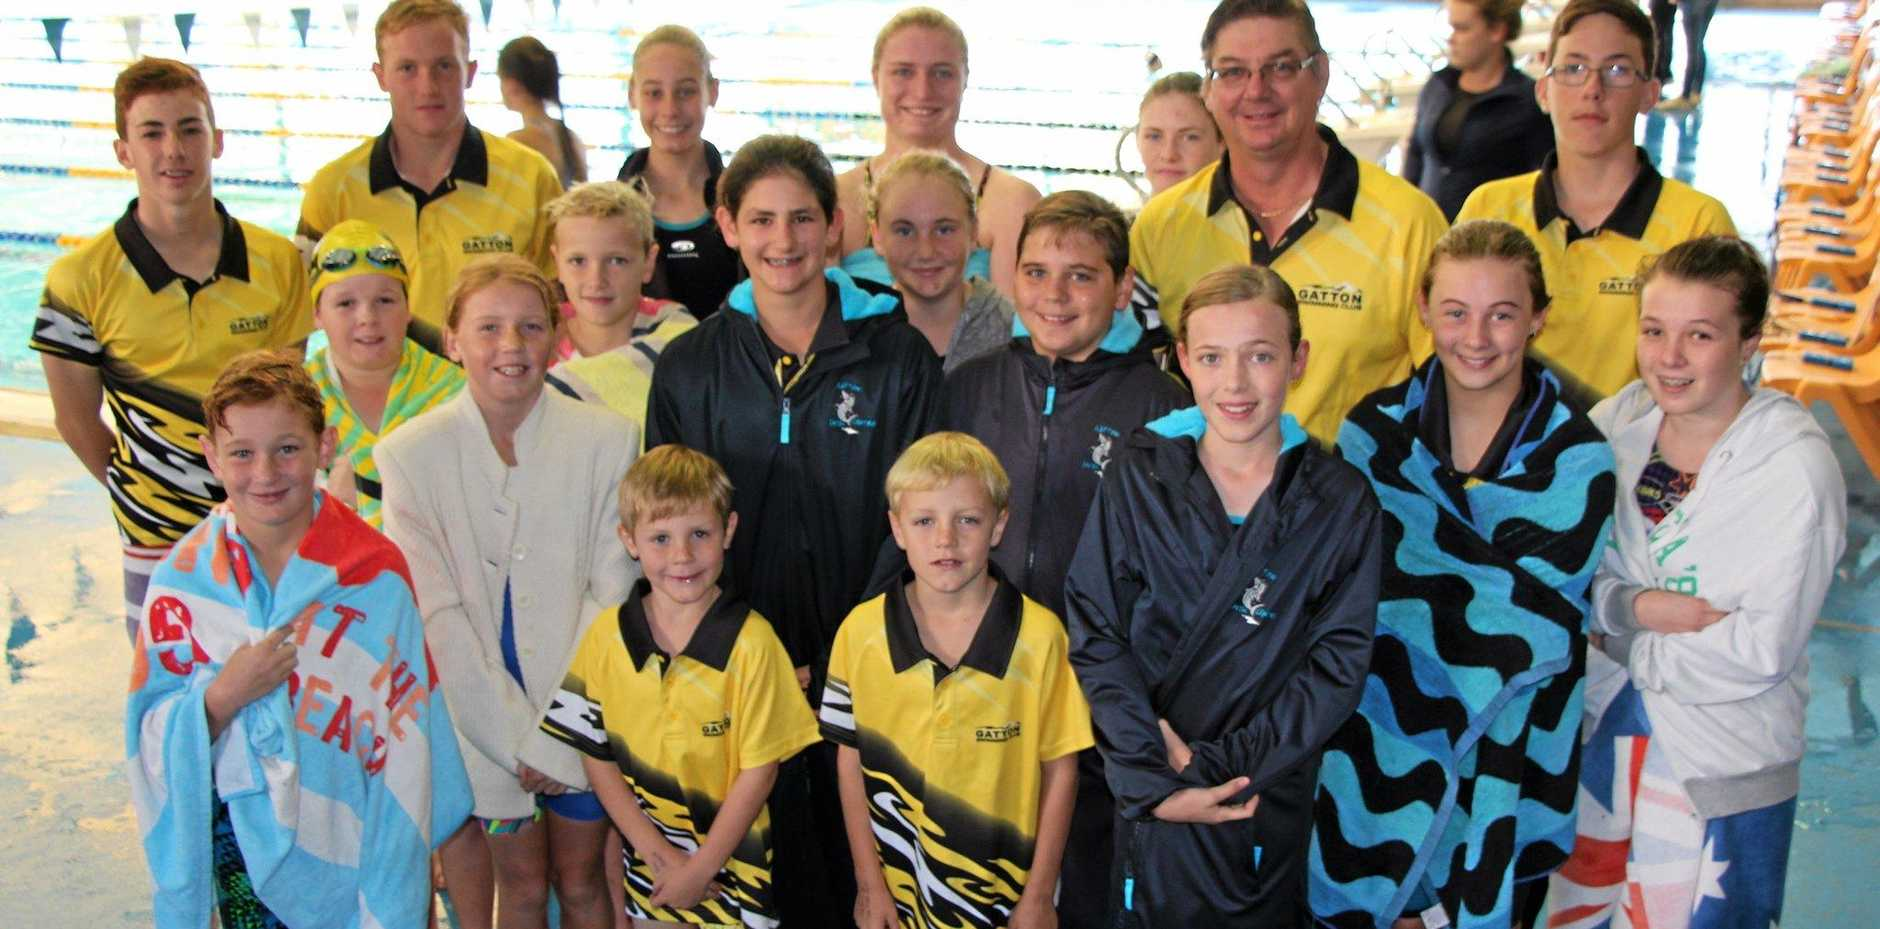 ON TOUR: Gatton Swimming Club members at the Toowoomba competition.